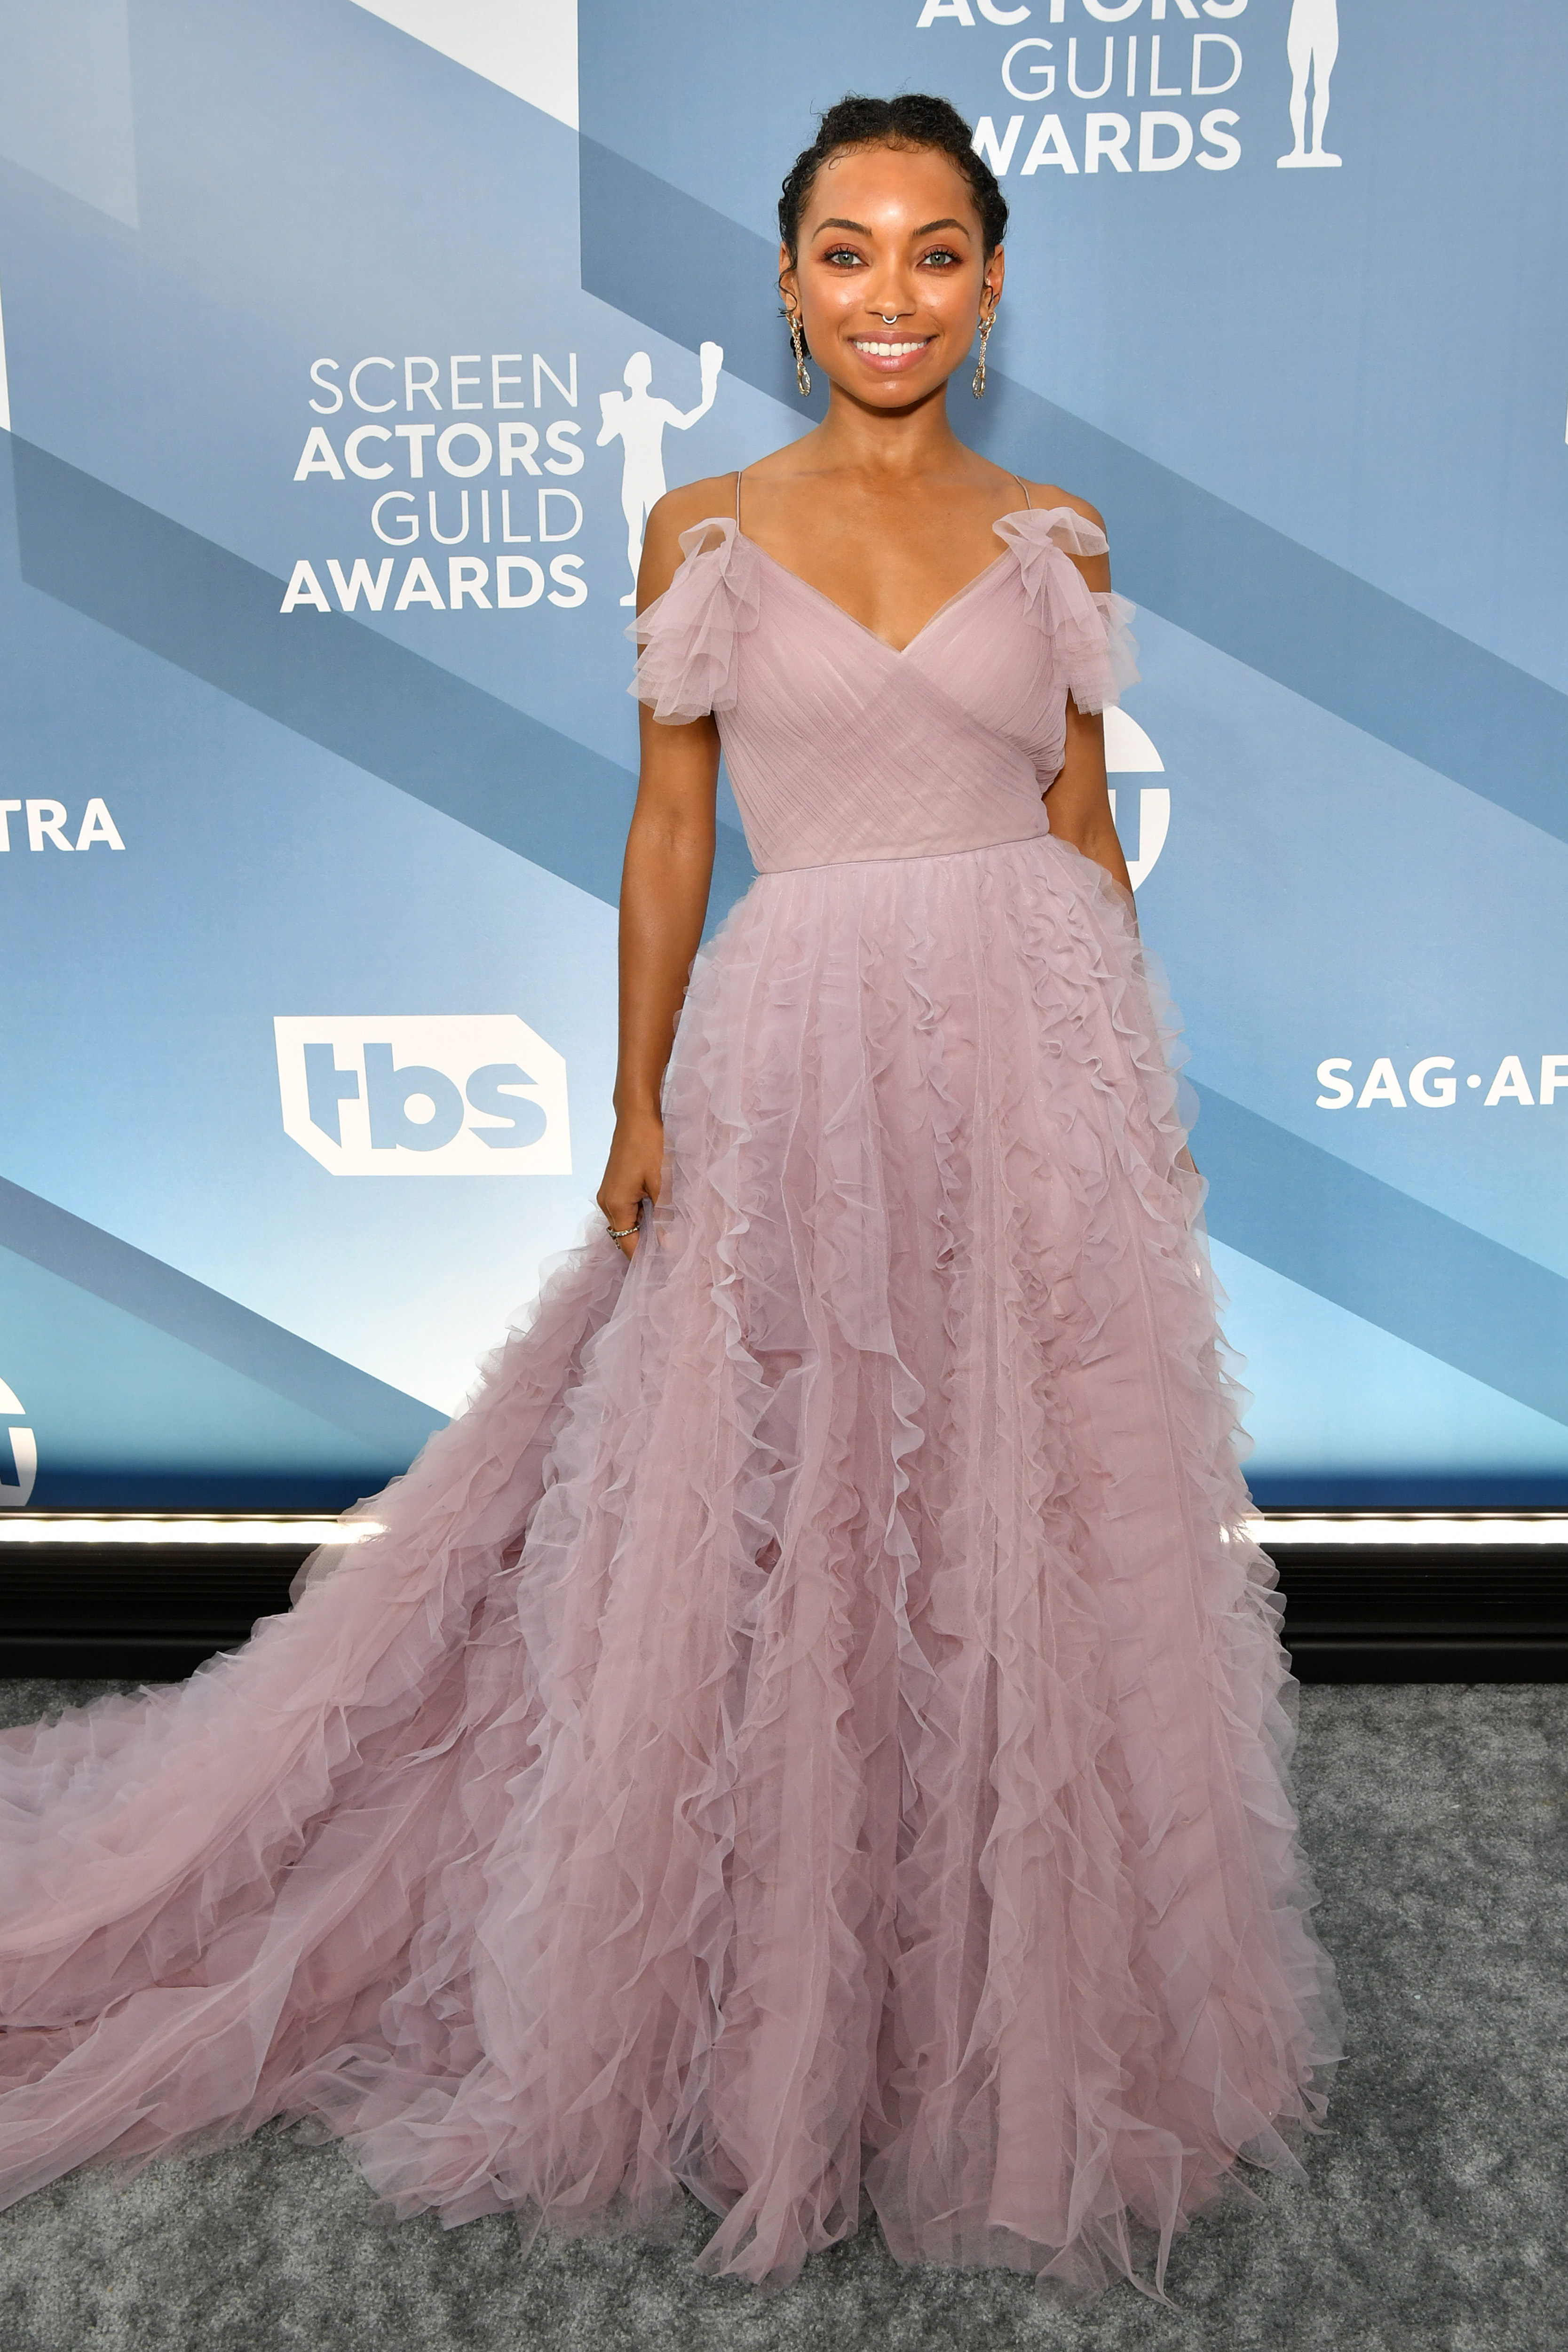 LOS ANGELES, CALIFORNIA - JANUARY 19: Logan Browning attends the 26th Annual Screen ActorsGuild Awards at The Shrine Auditorium on January 19, 2020 in Los Angeles, California. (Photo by Amy Sussman/WireImage)